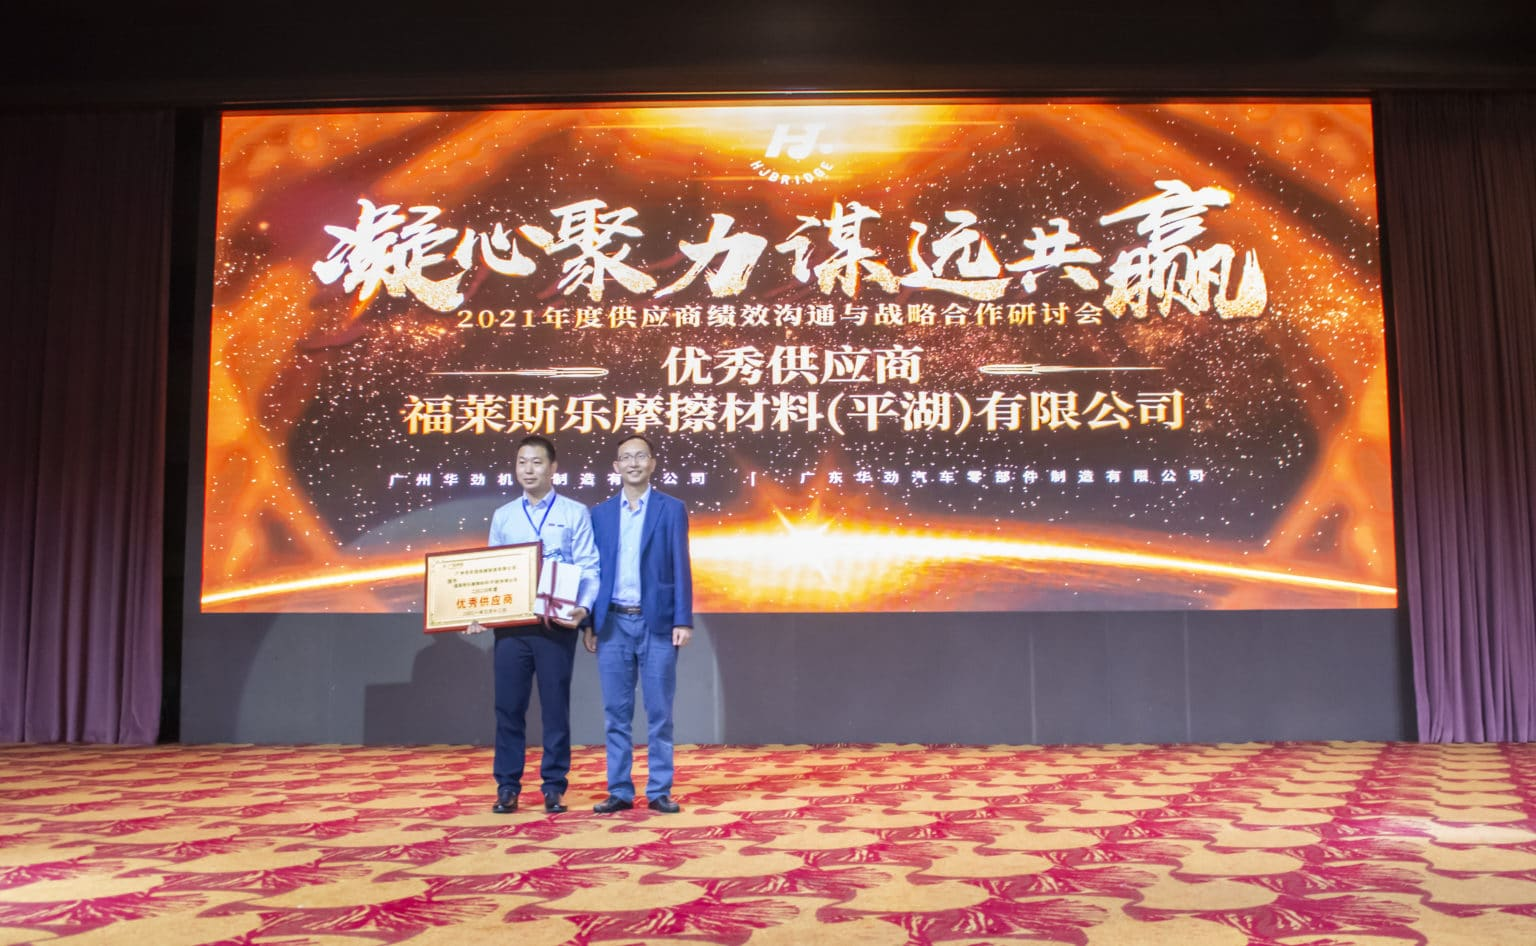 Fras-le Asia sales manager Kevin Zhang receives recognition from Huajing CEO Mr. Zheng for being a top-10 supplier